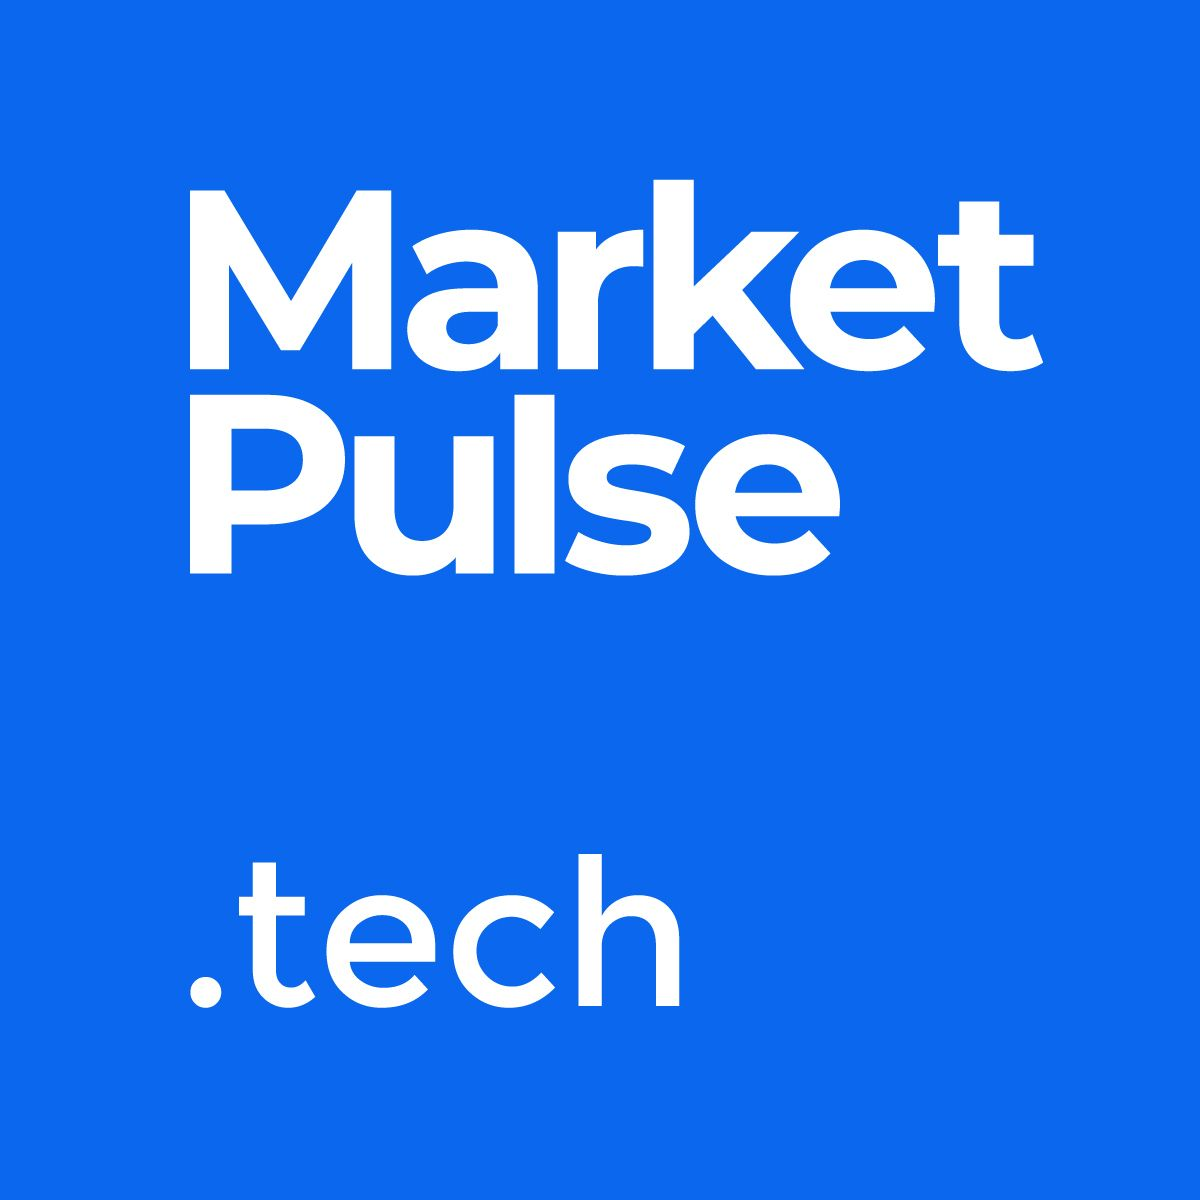 Market Pulse Tech Hacker Noon profile picture